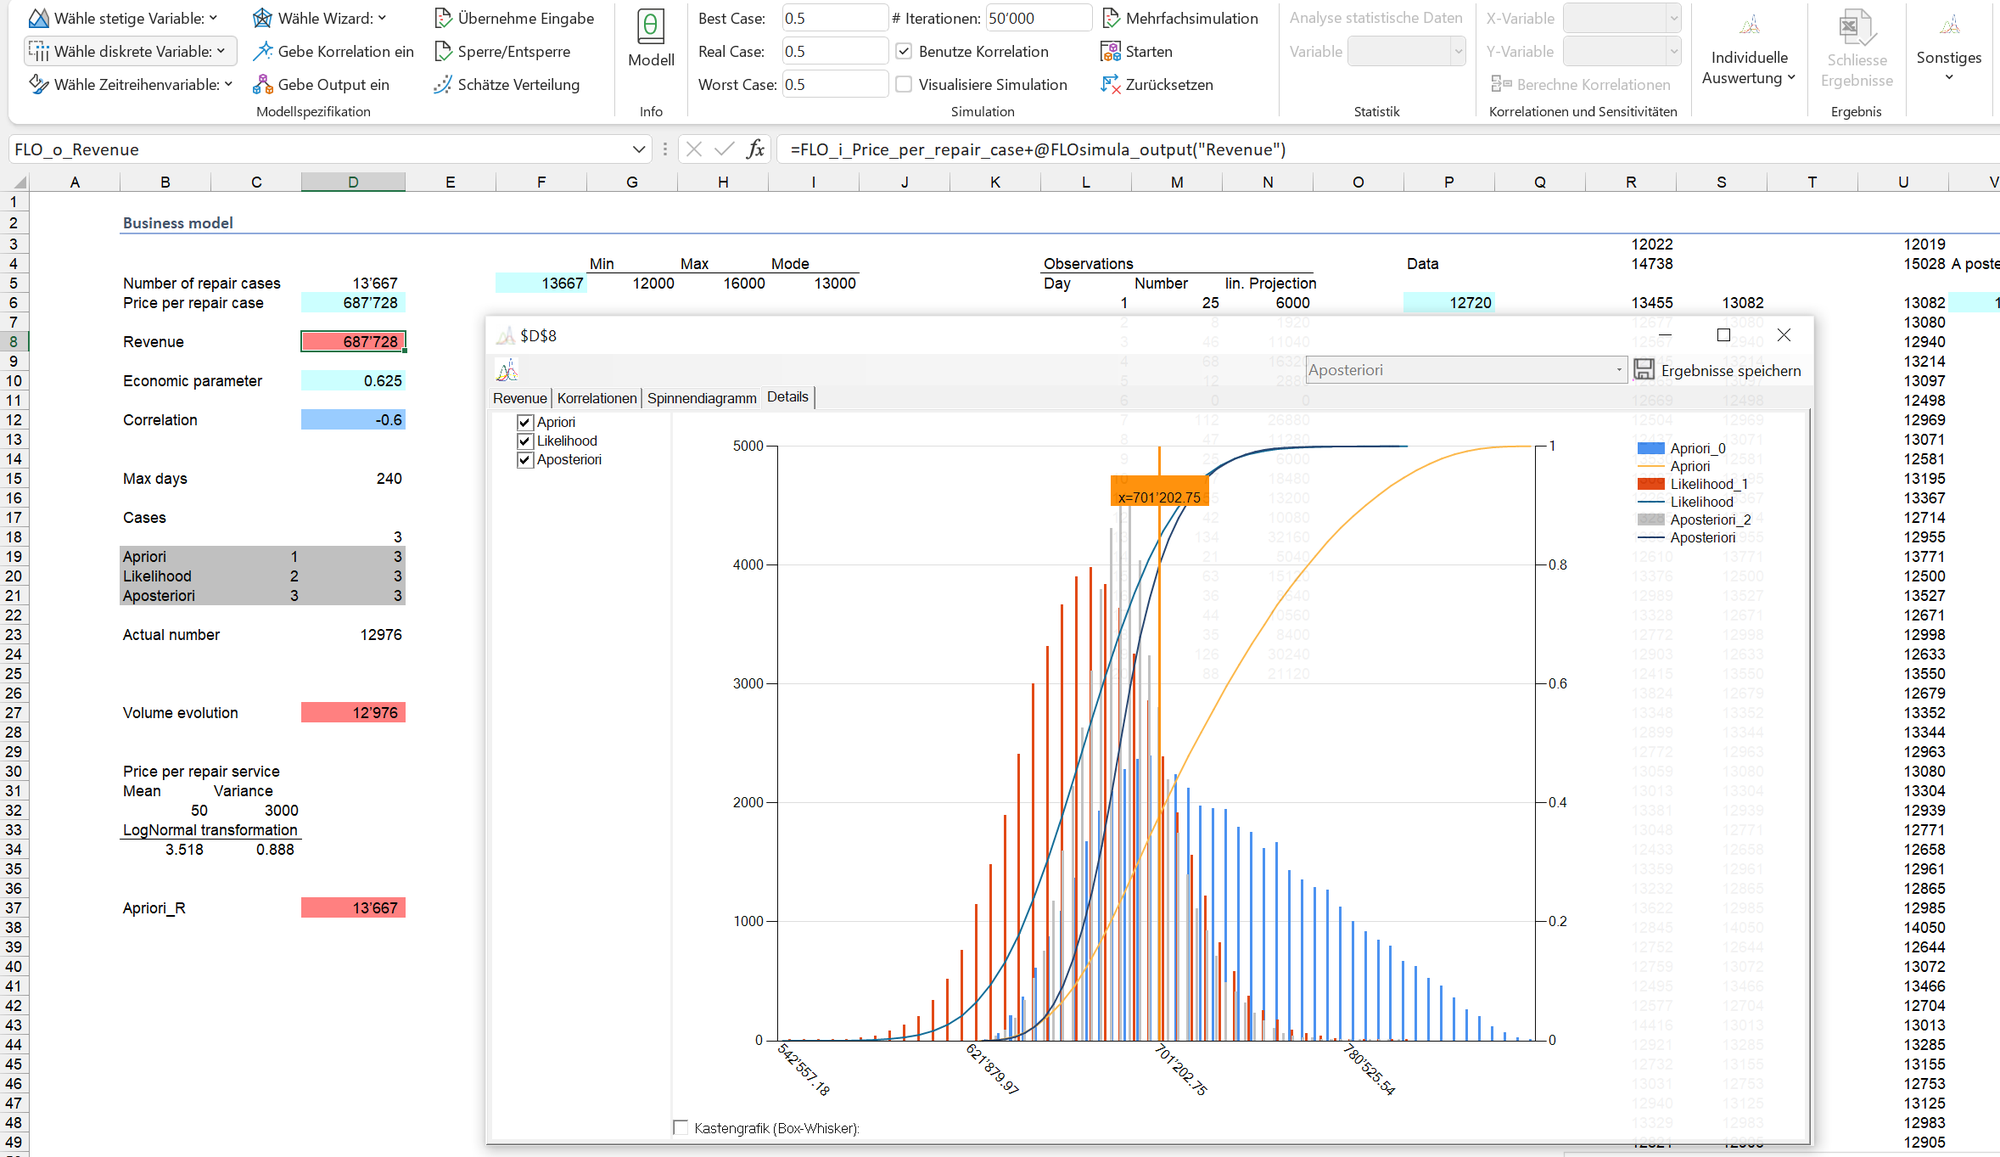 Corporate planning  - a new approach based on Bayesian statistics